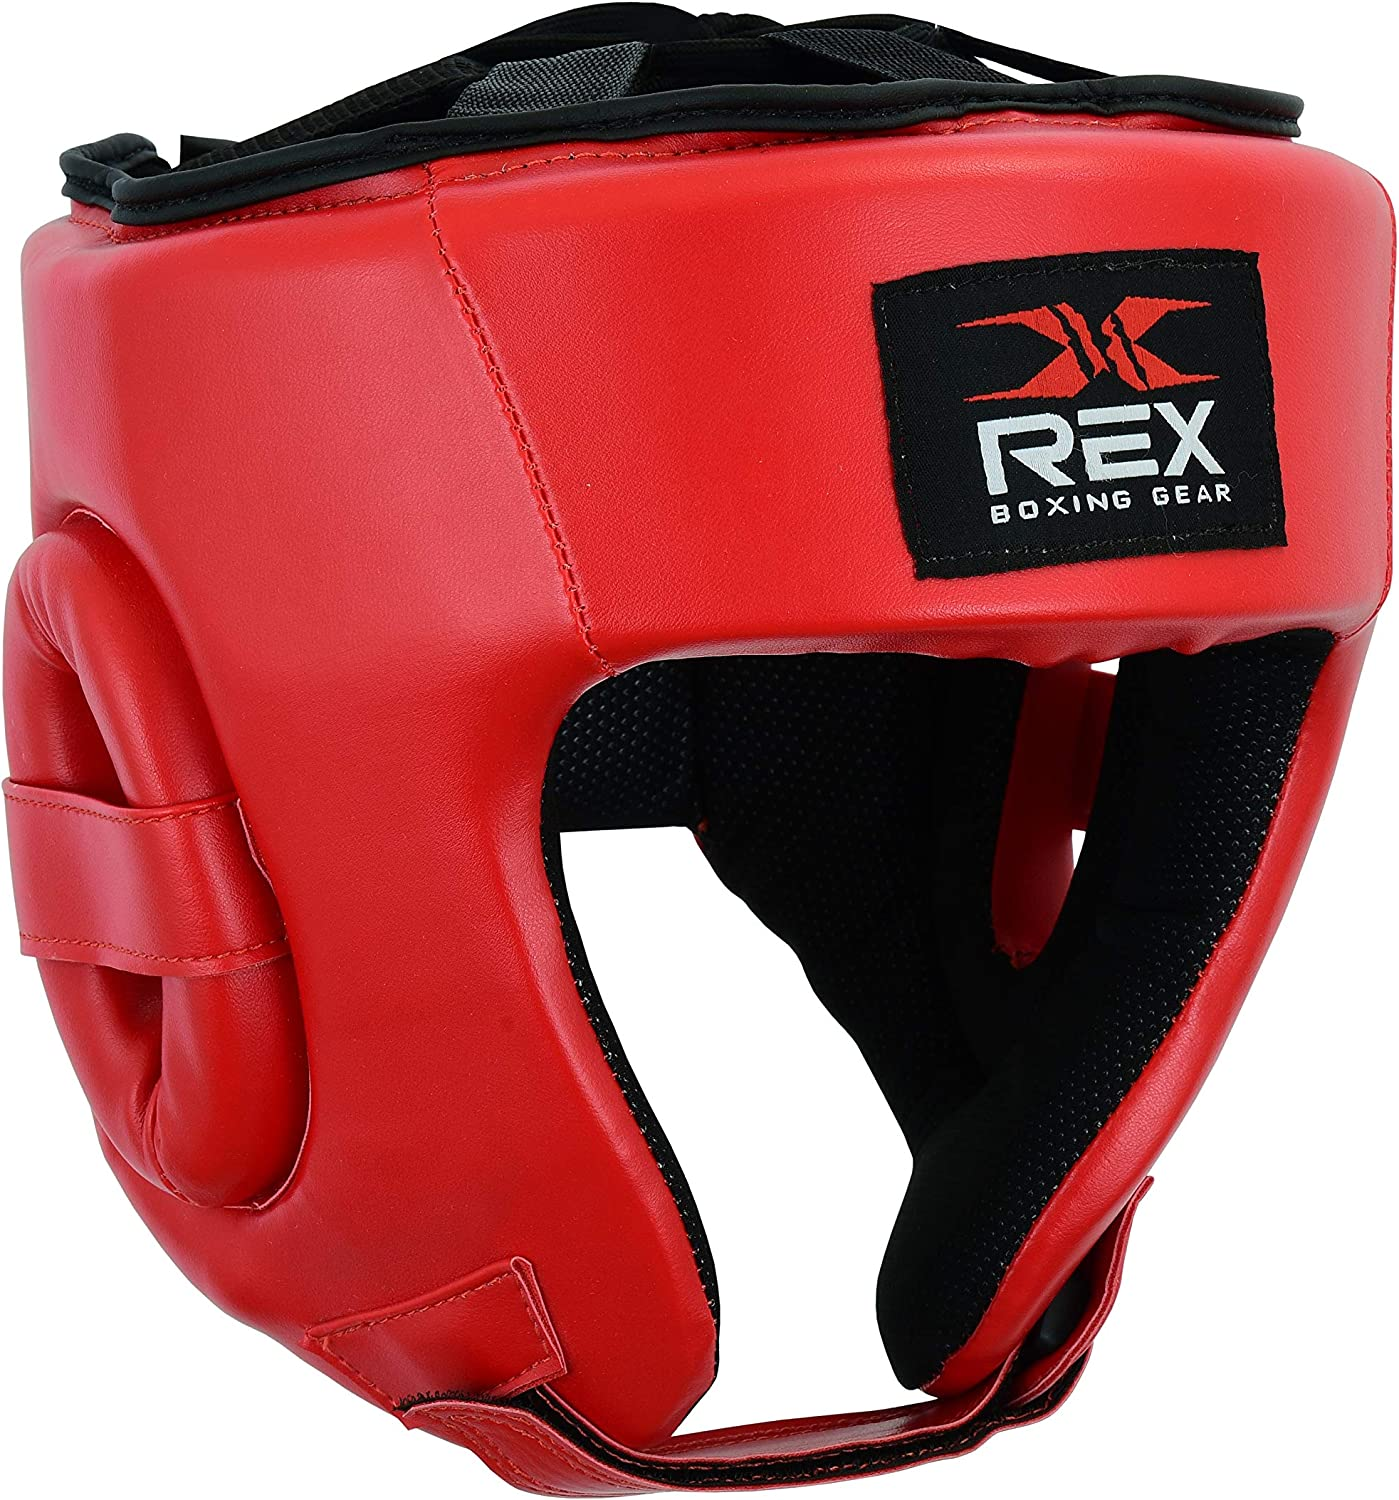 Sparring Head Protection and Punching Mitts Muay Thai REX Boxing Set Gloves Head Guard Boxing Set MMA Kick Boxing Fighting